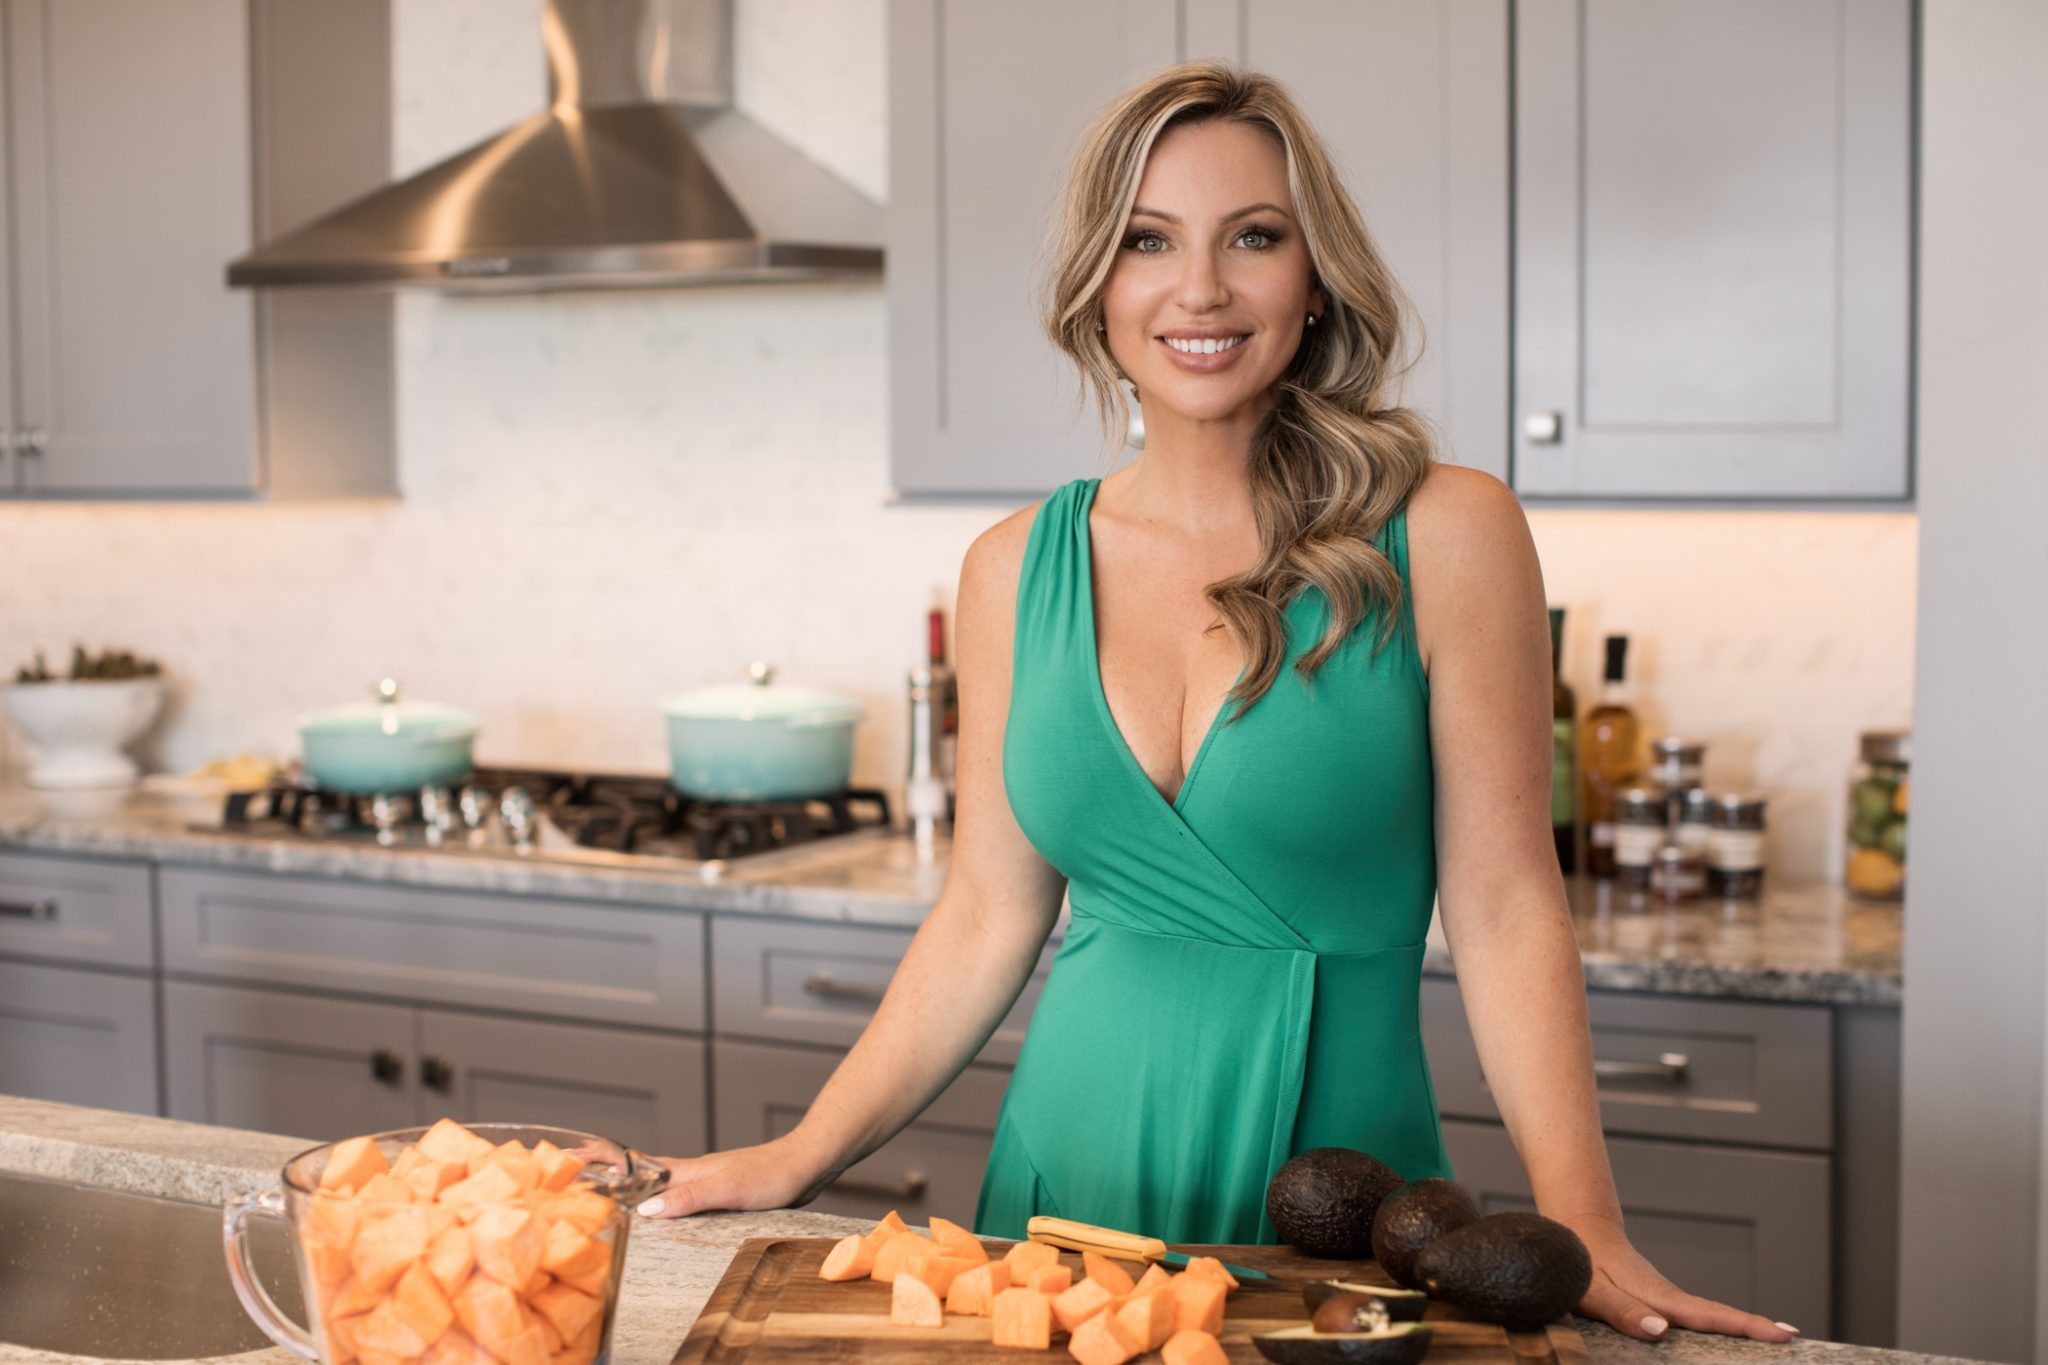 Rachel Maser's 7 Tips for Meal Prep